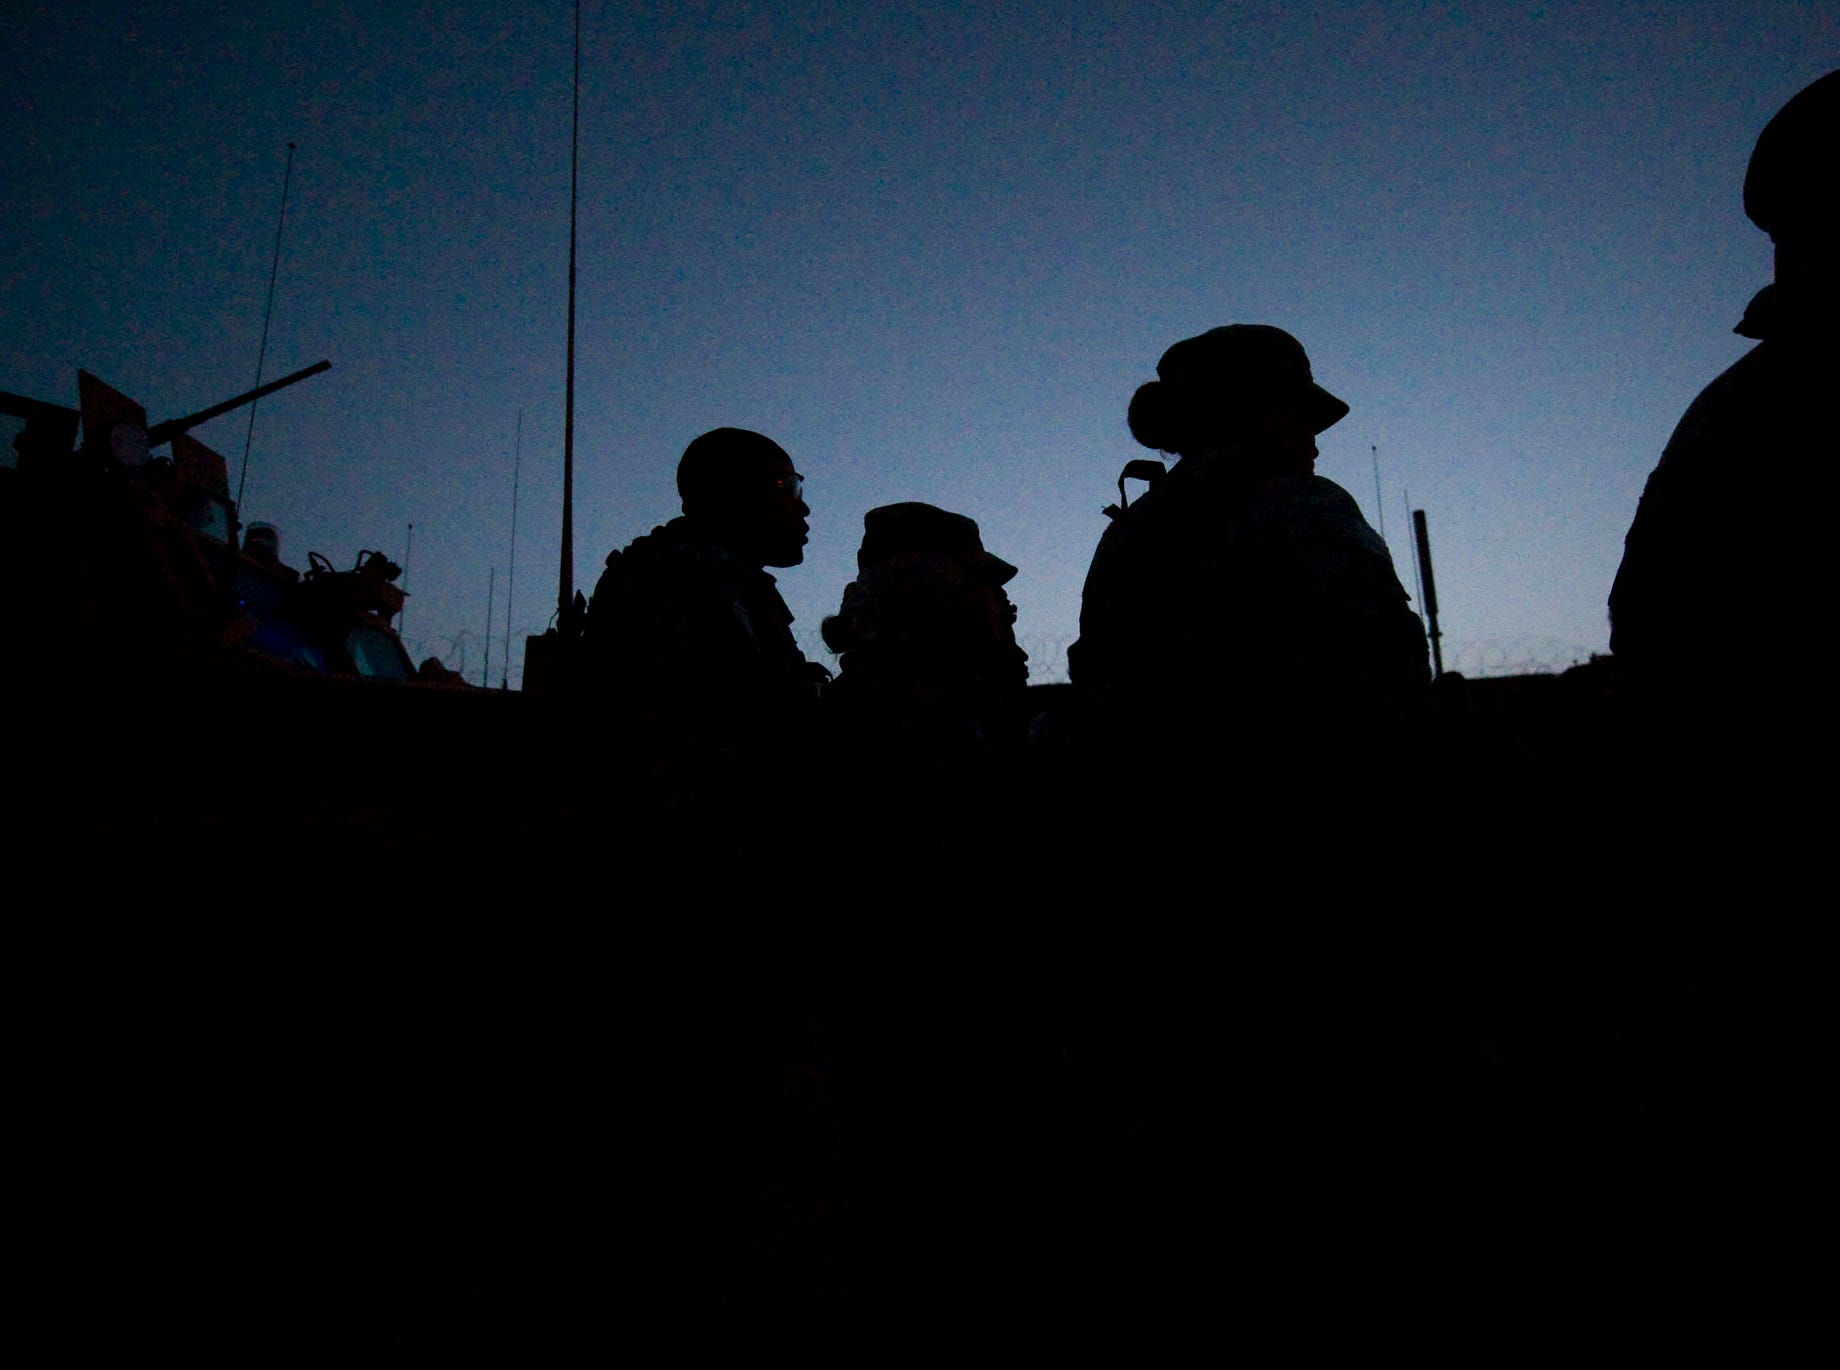 The 615th Military Police Company listens to a briefing by Capt. Bryan Anderson before a raid of a suspected weapons and IED cache early Friday morning, September 17, 2010, in Gardez in Paktia Province.